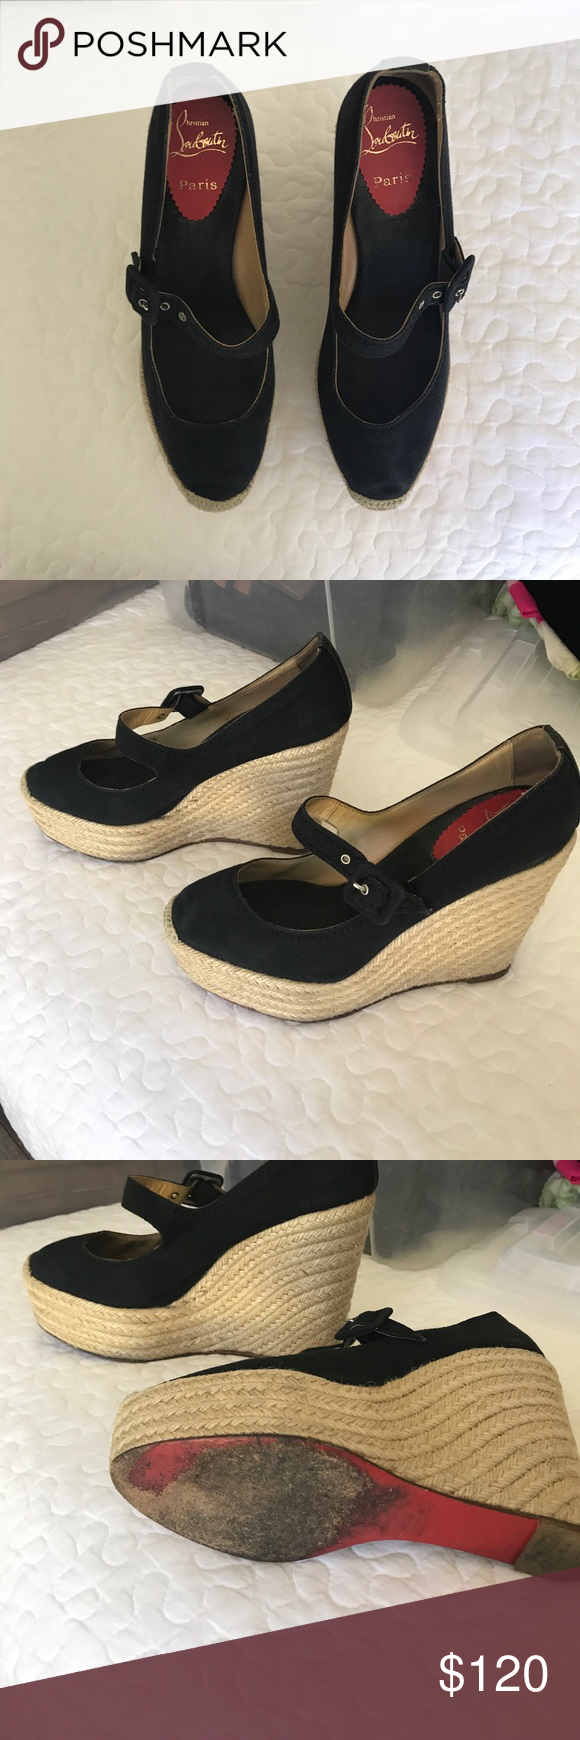 christian louboutin espadrilles made in spain